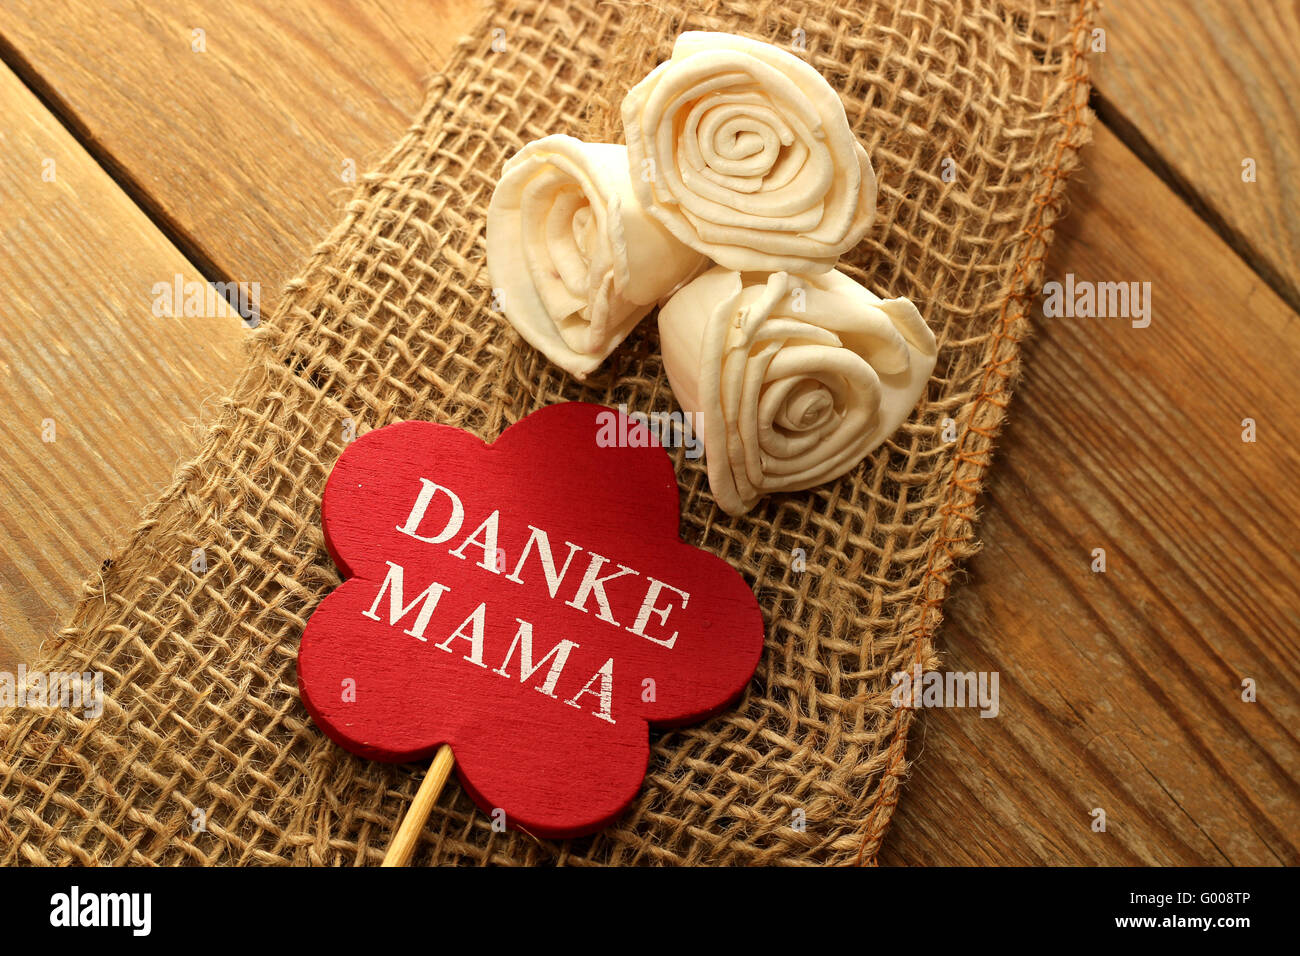 Mother's Day - Thank You Mama - Stock Image